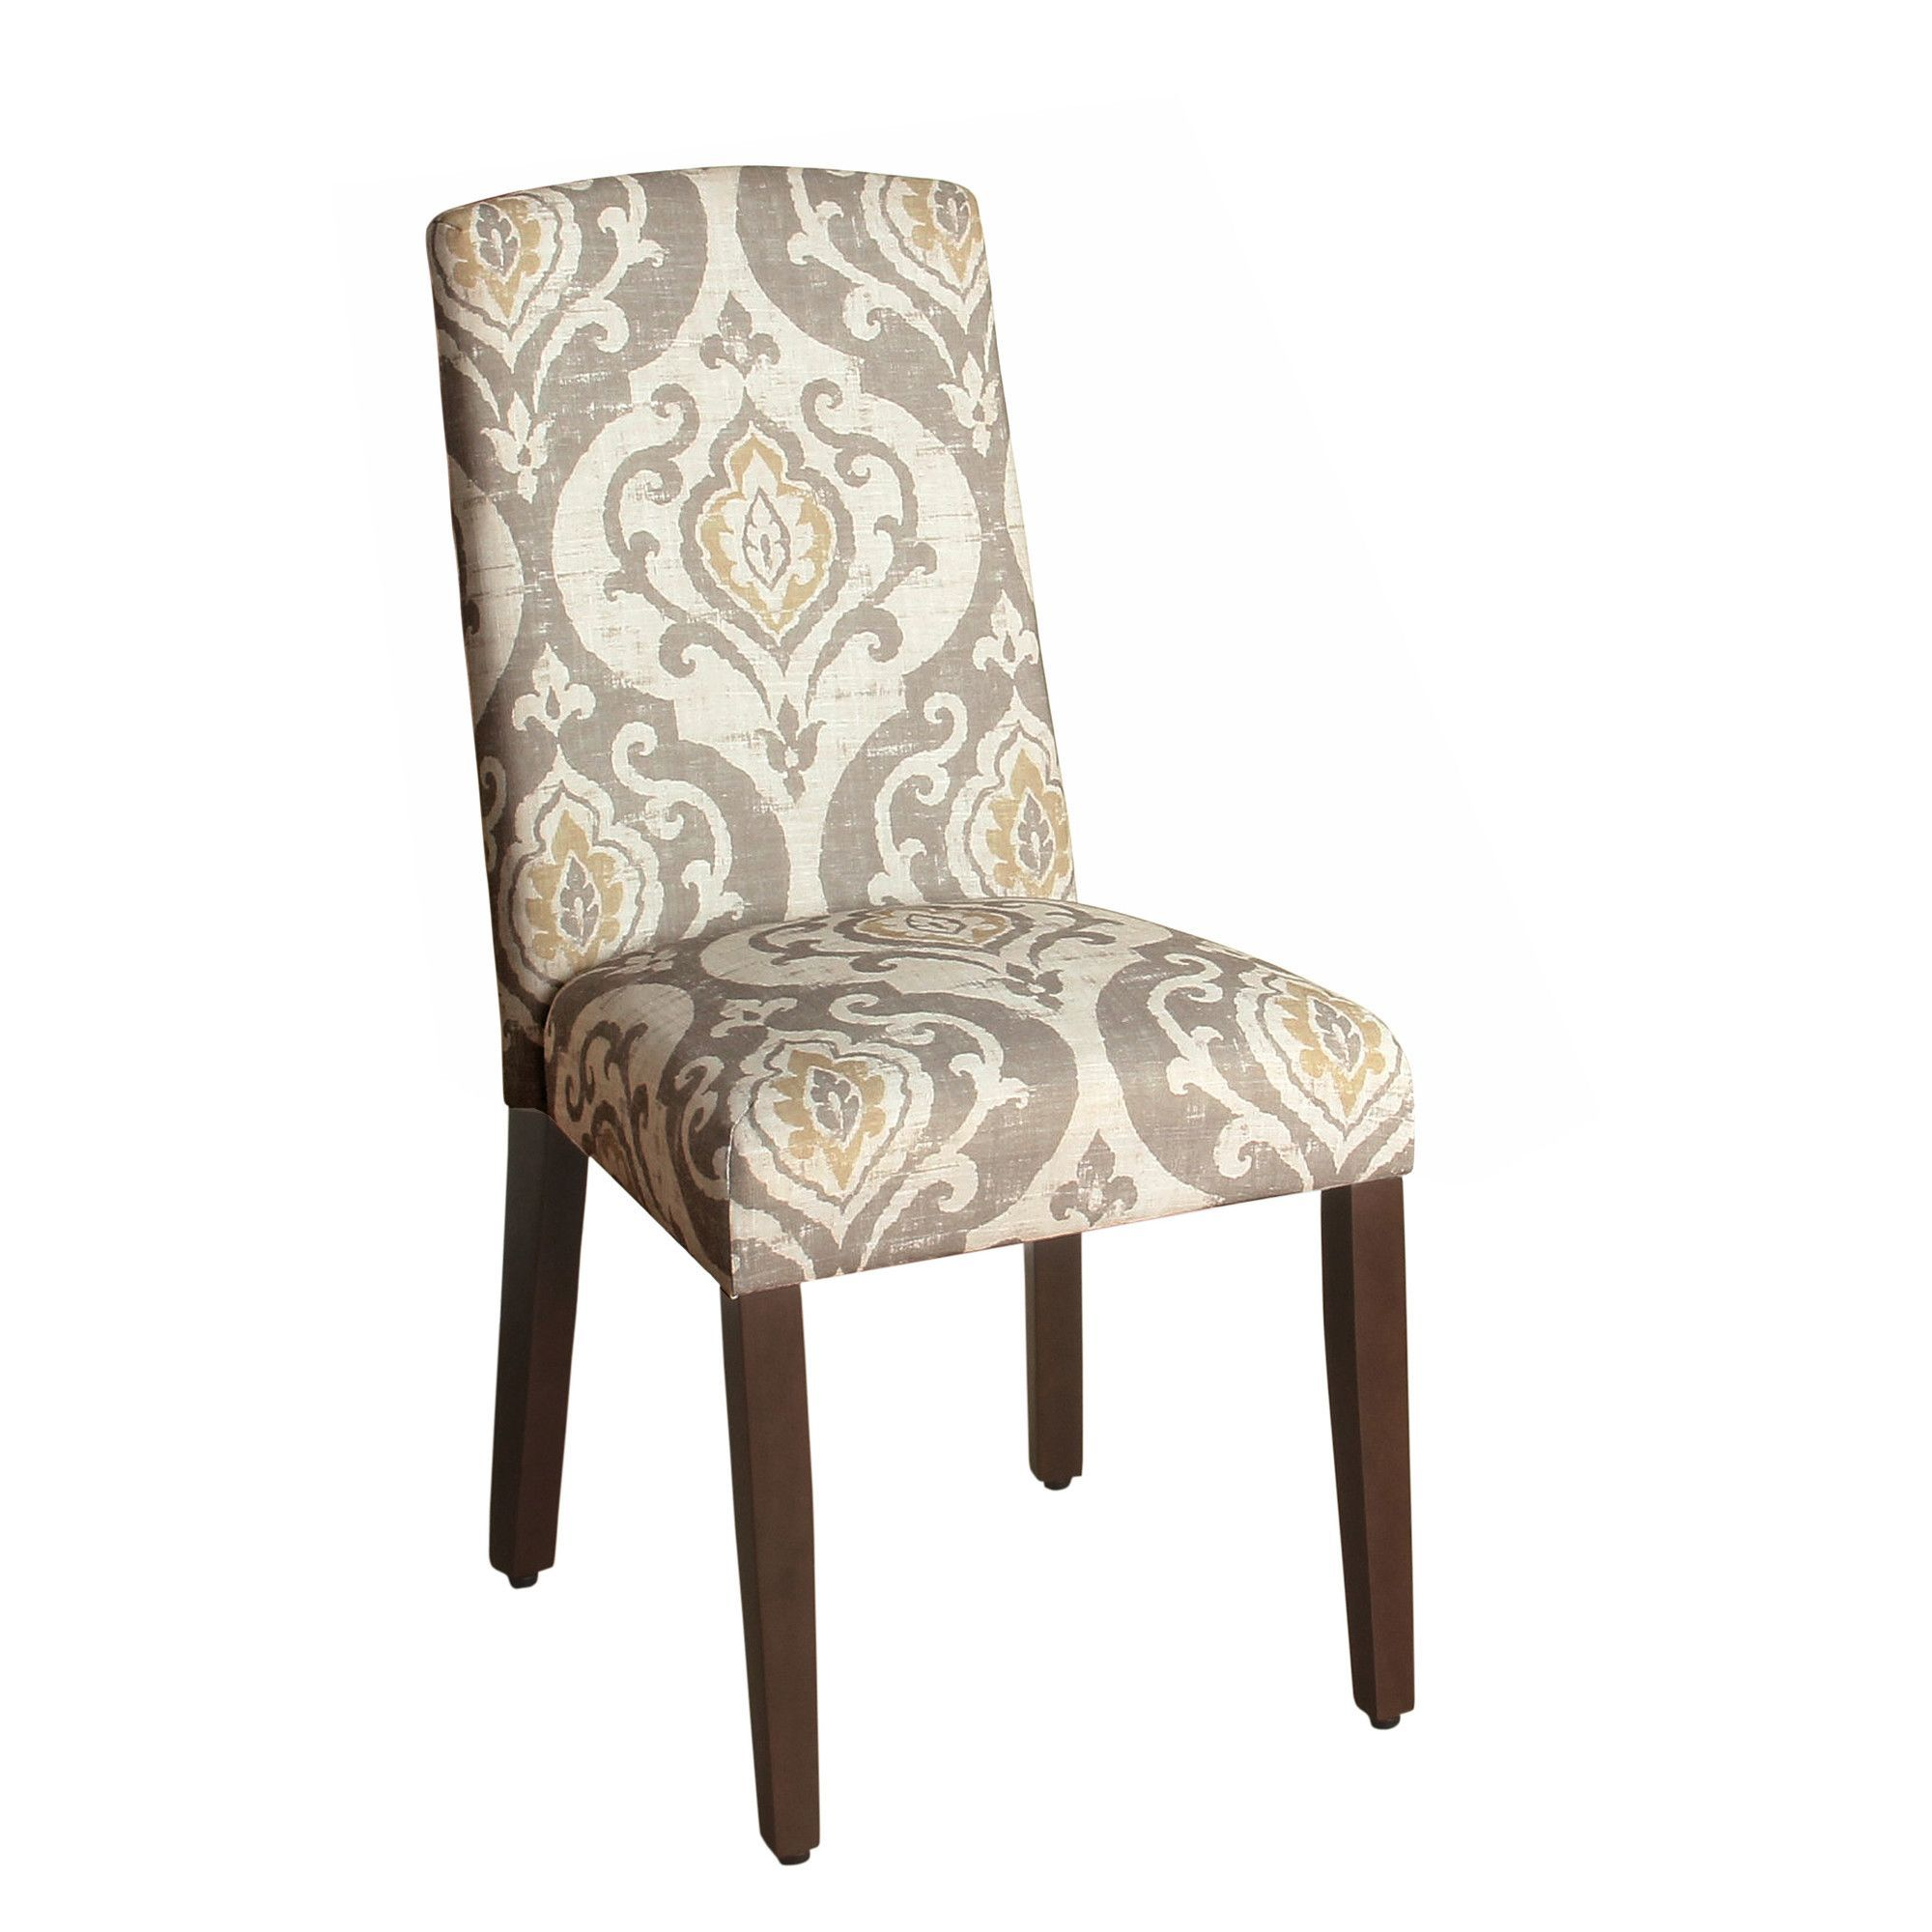 Features Set Of 2 Parsons Dining Chair Solid Wood Legs